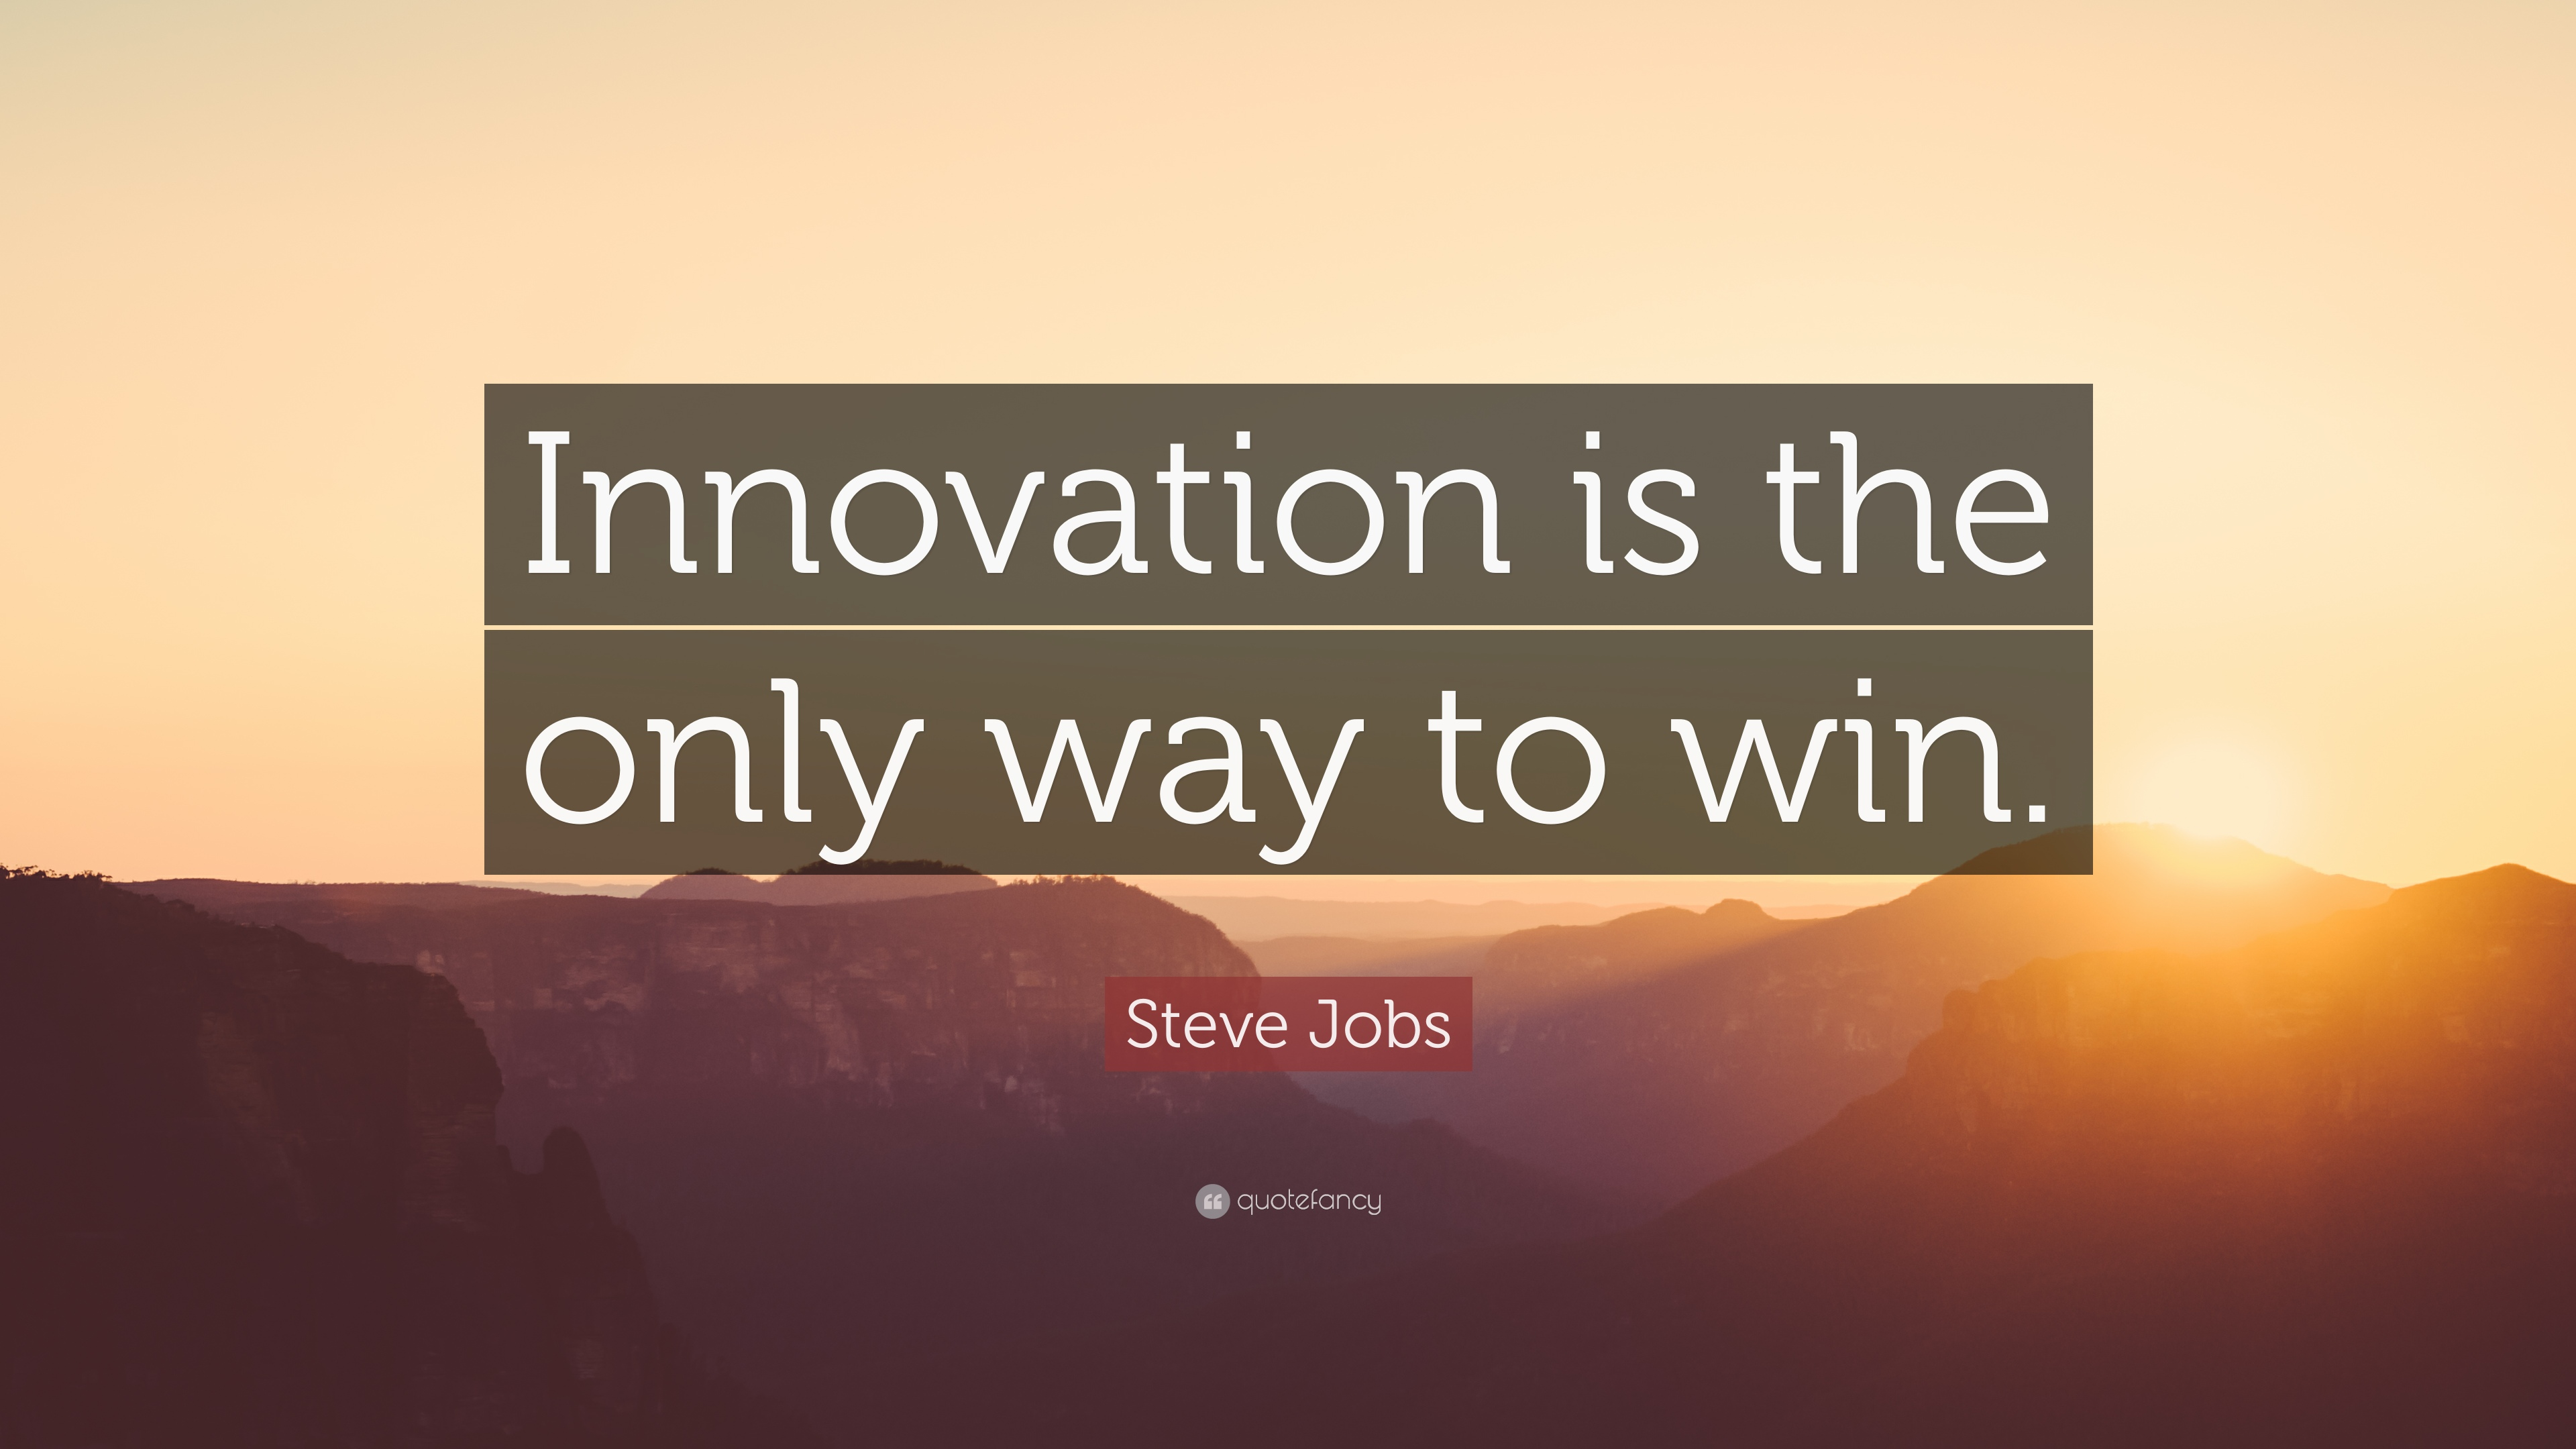 Drake Wallpaper Quotes Steve Jobs Quote Innovation Is The Only Way To Win 23